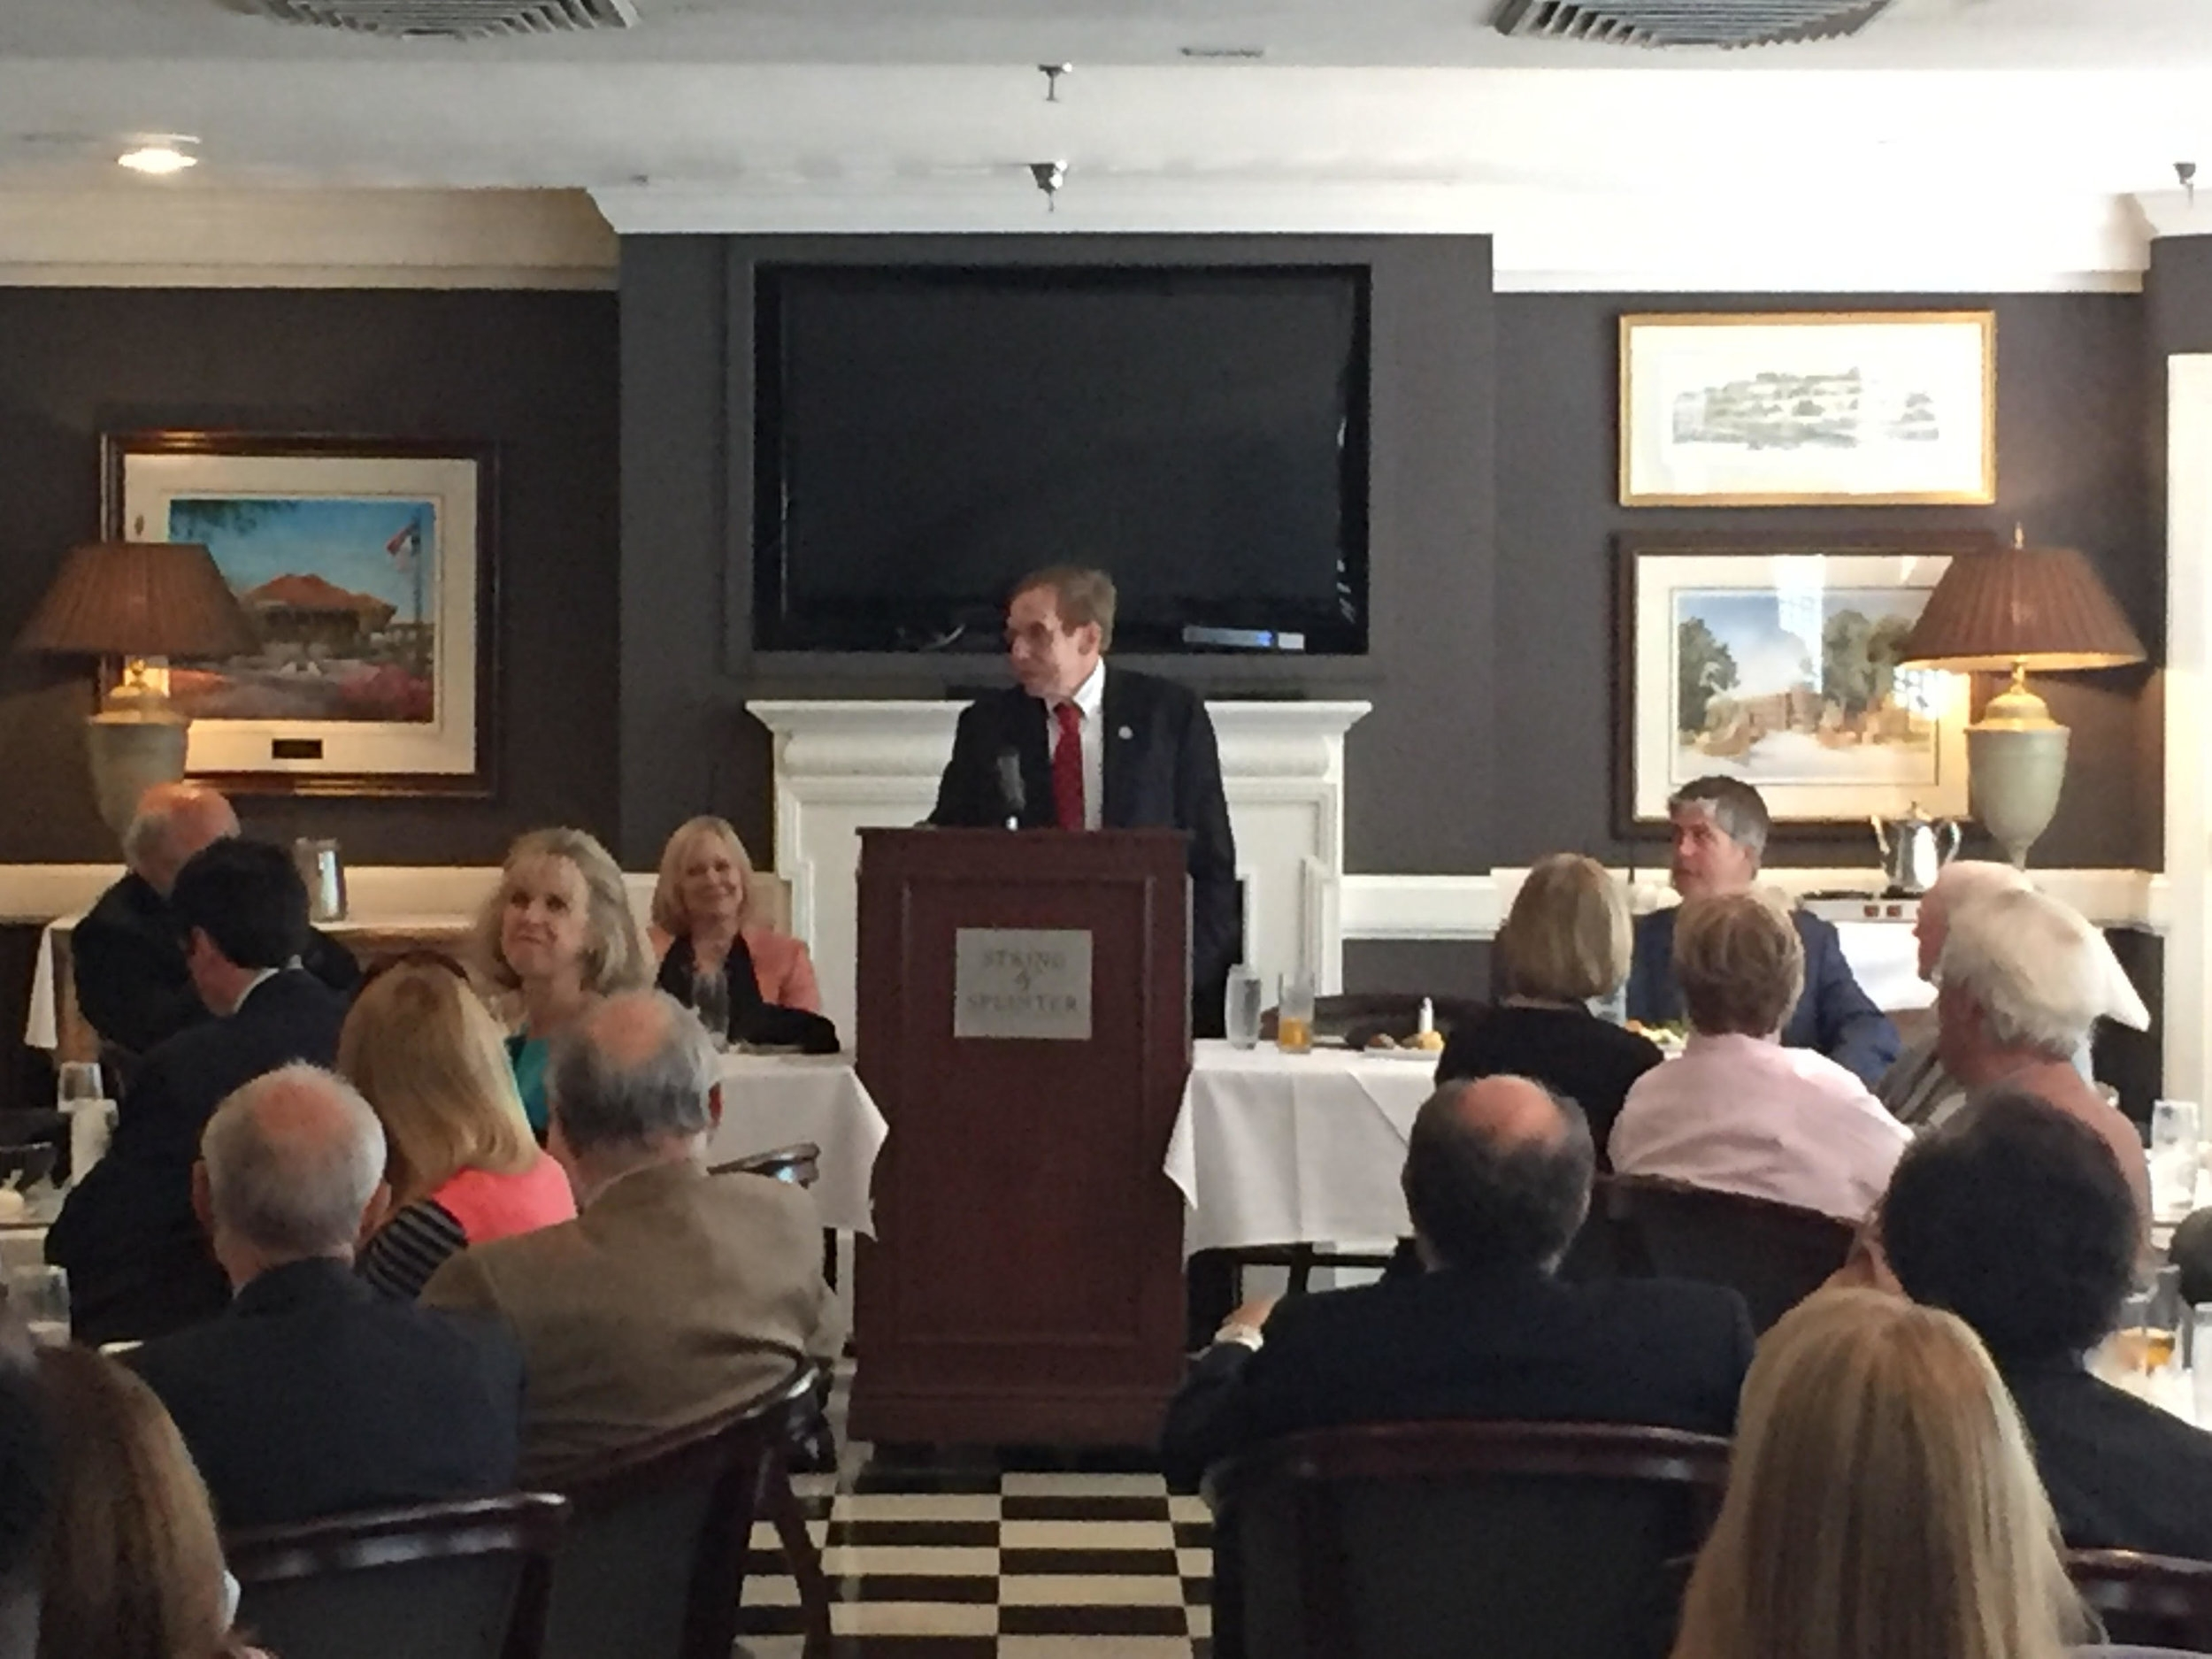 Speaking to the High Point Bar Association, September 7, 2016.